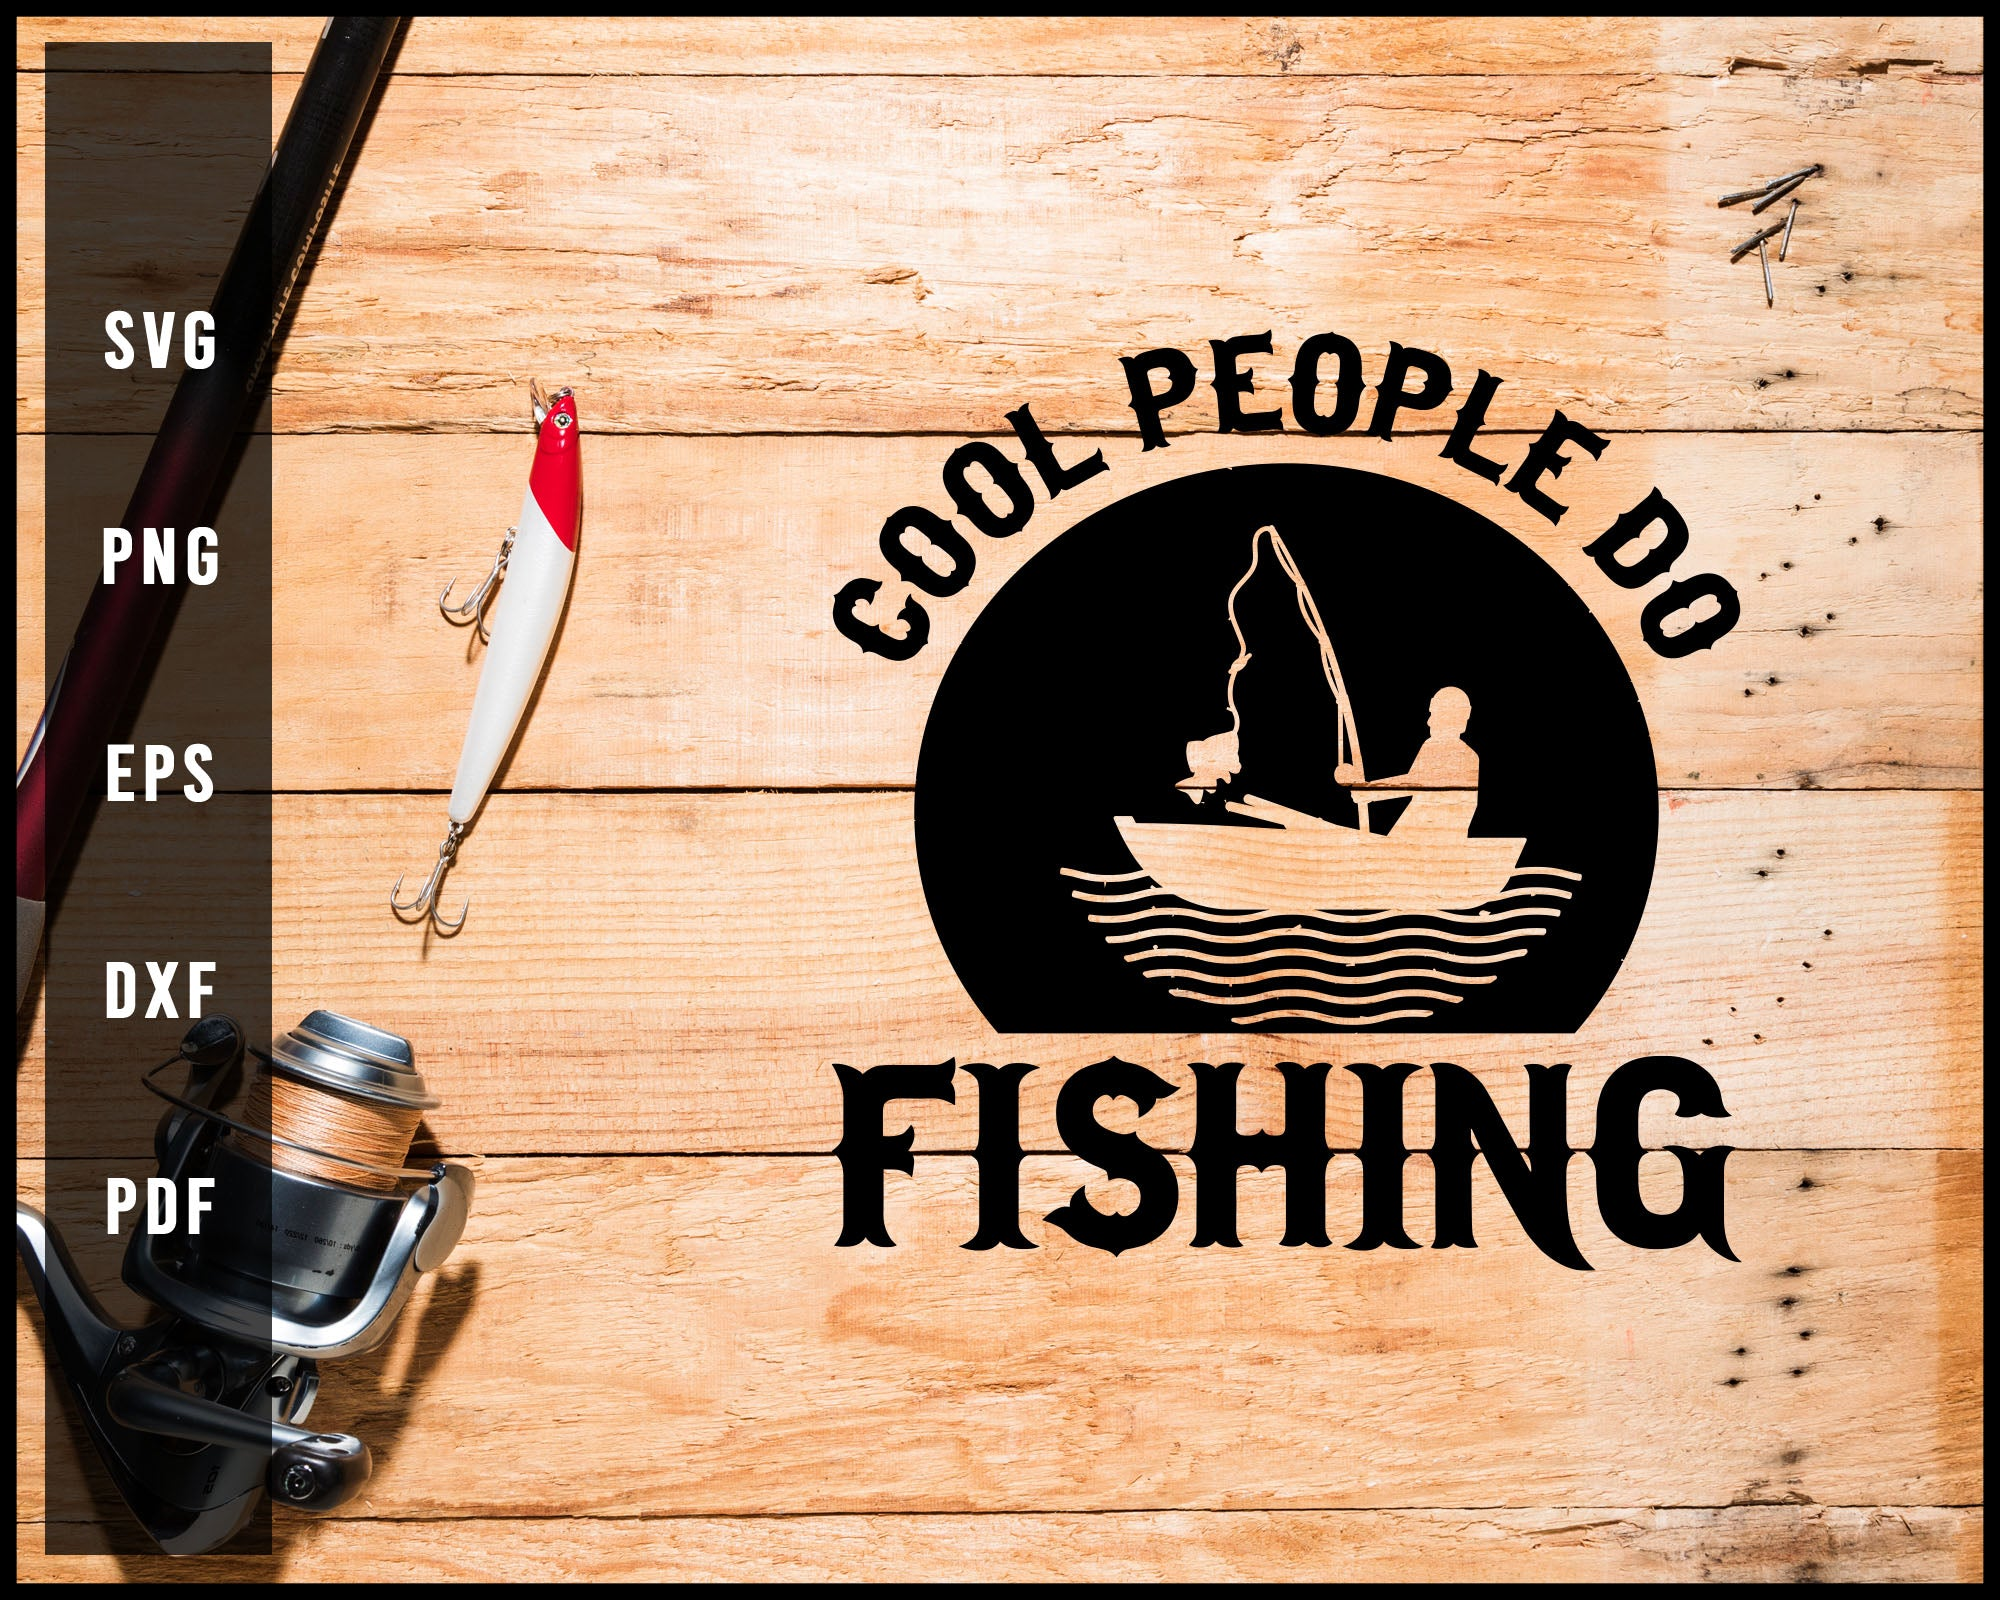 Cool People Do Fishing svg png Silhouette Designs For Cricut And Printable Files